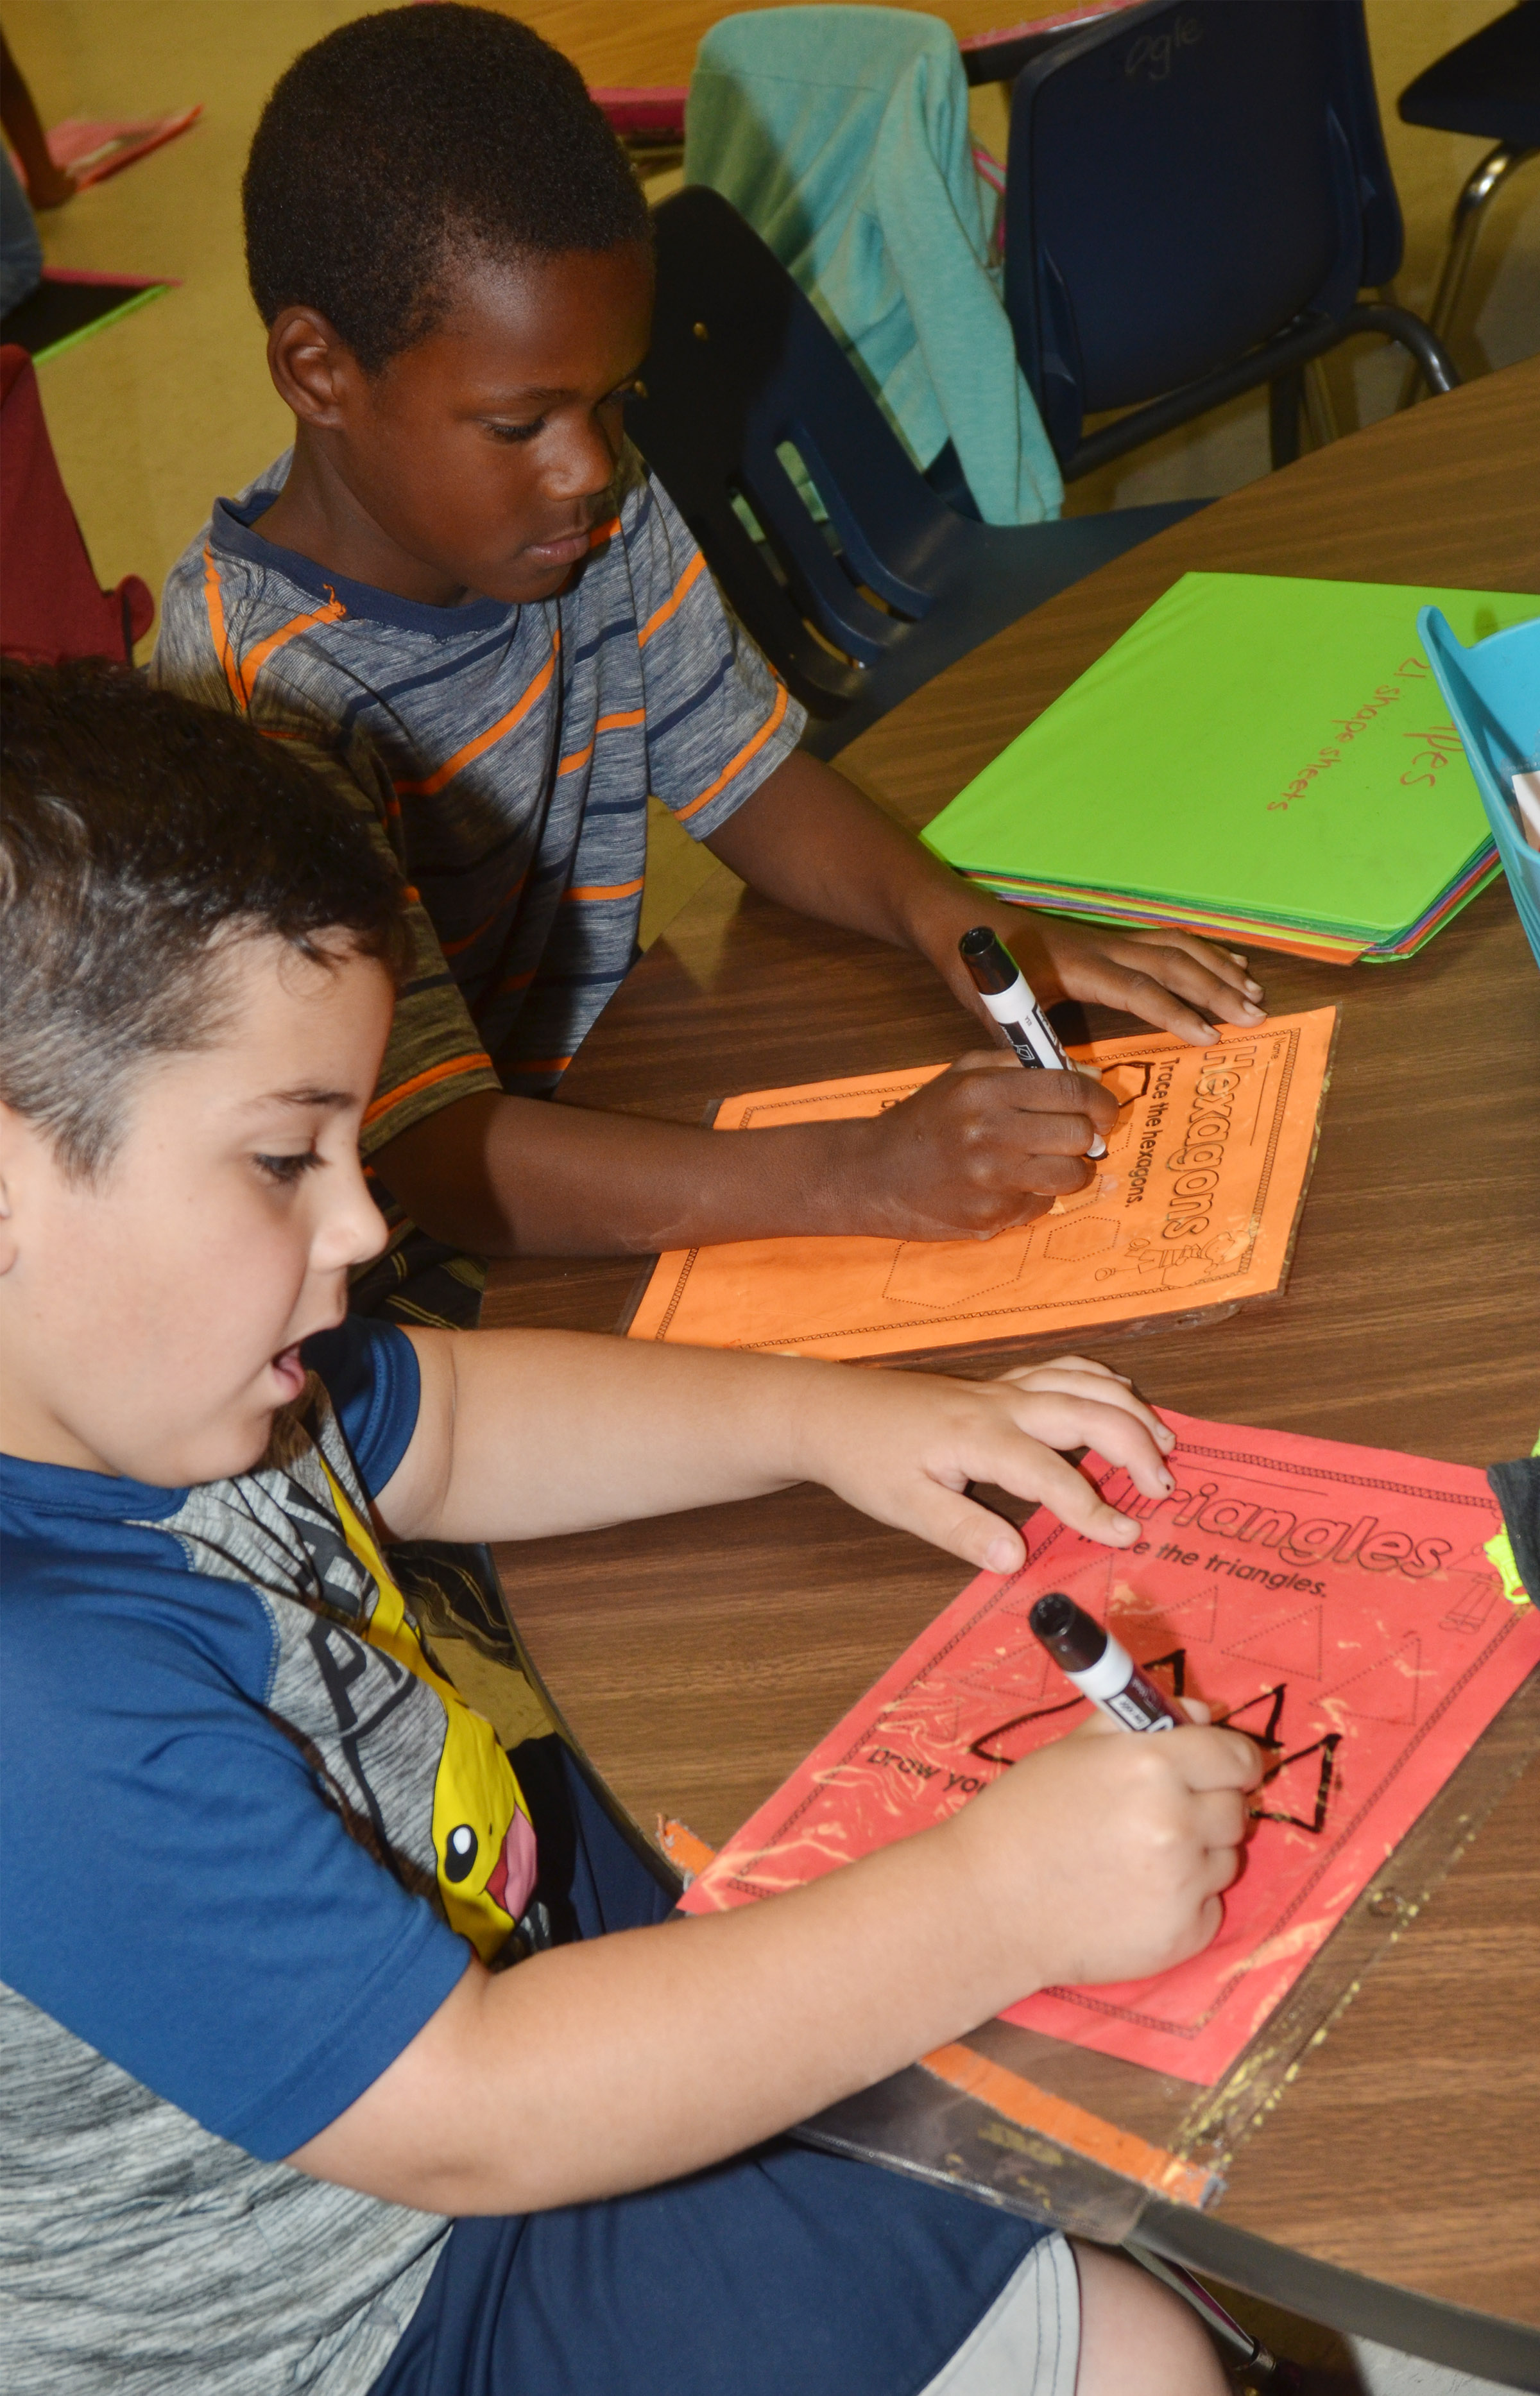 CES first-graders Nicholas Almeida, in front, and Lazarick Miller draw shapes.